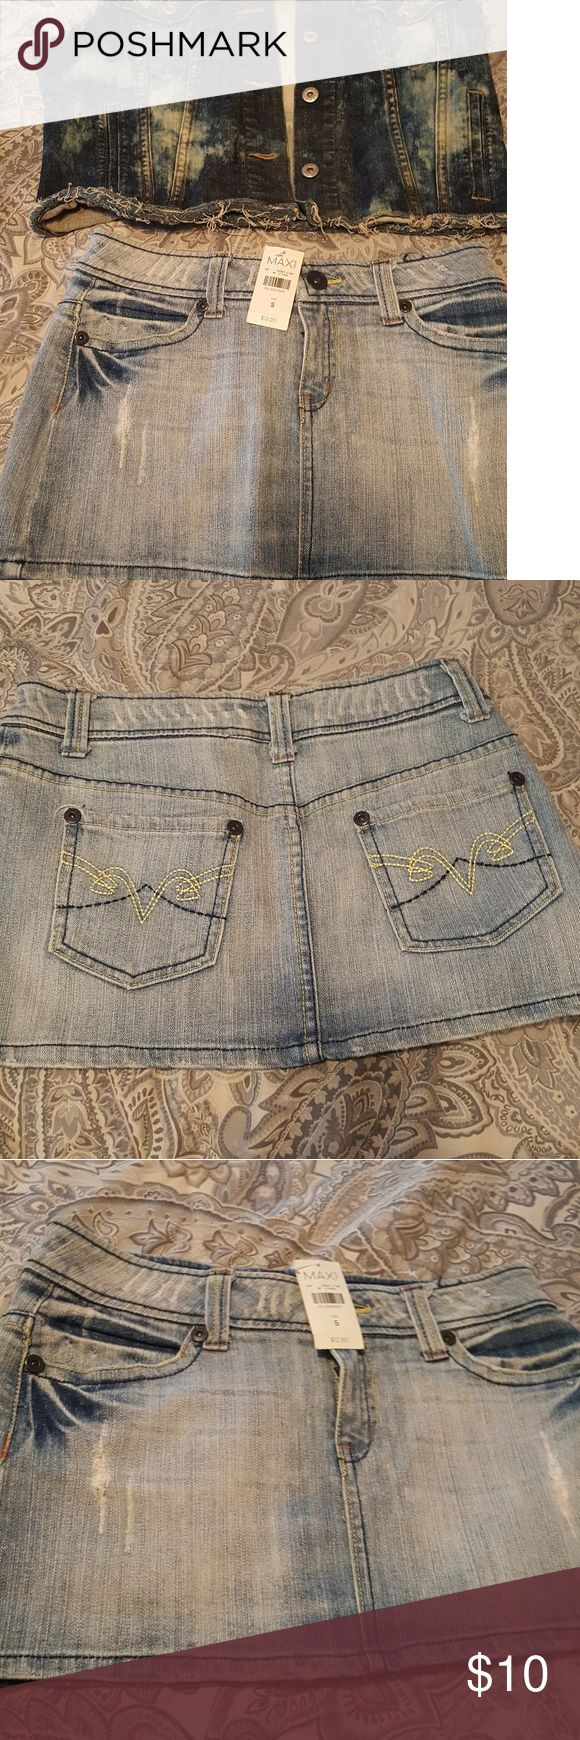 Jean  mini skirt Rave Max Jean skirt size 5 Levi's Bottoms Skirts